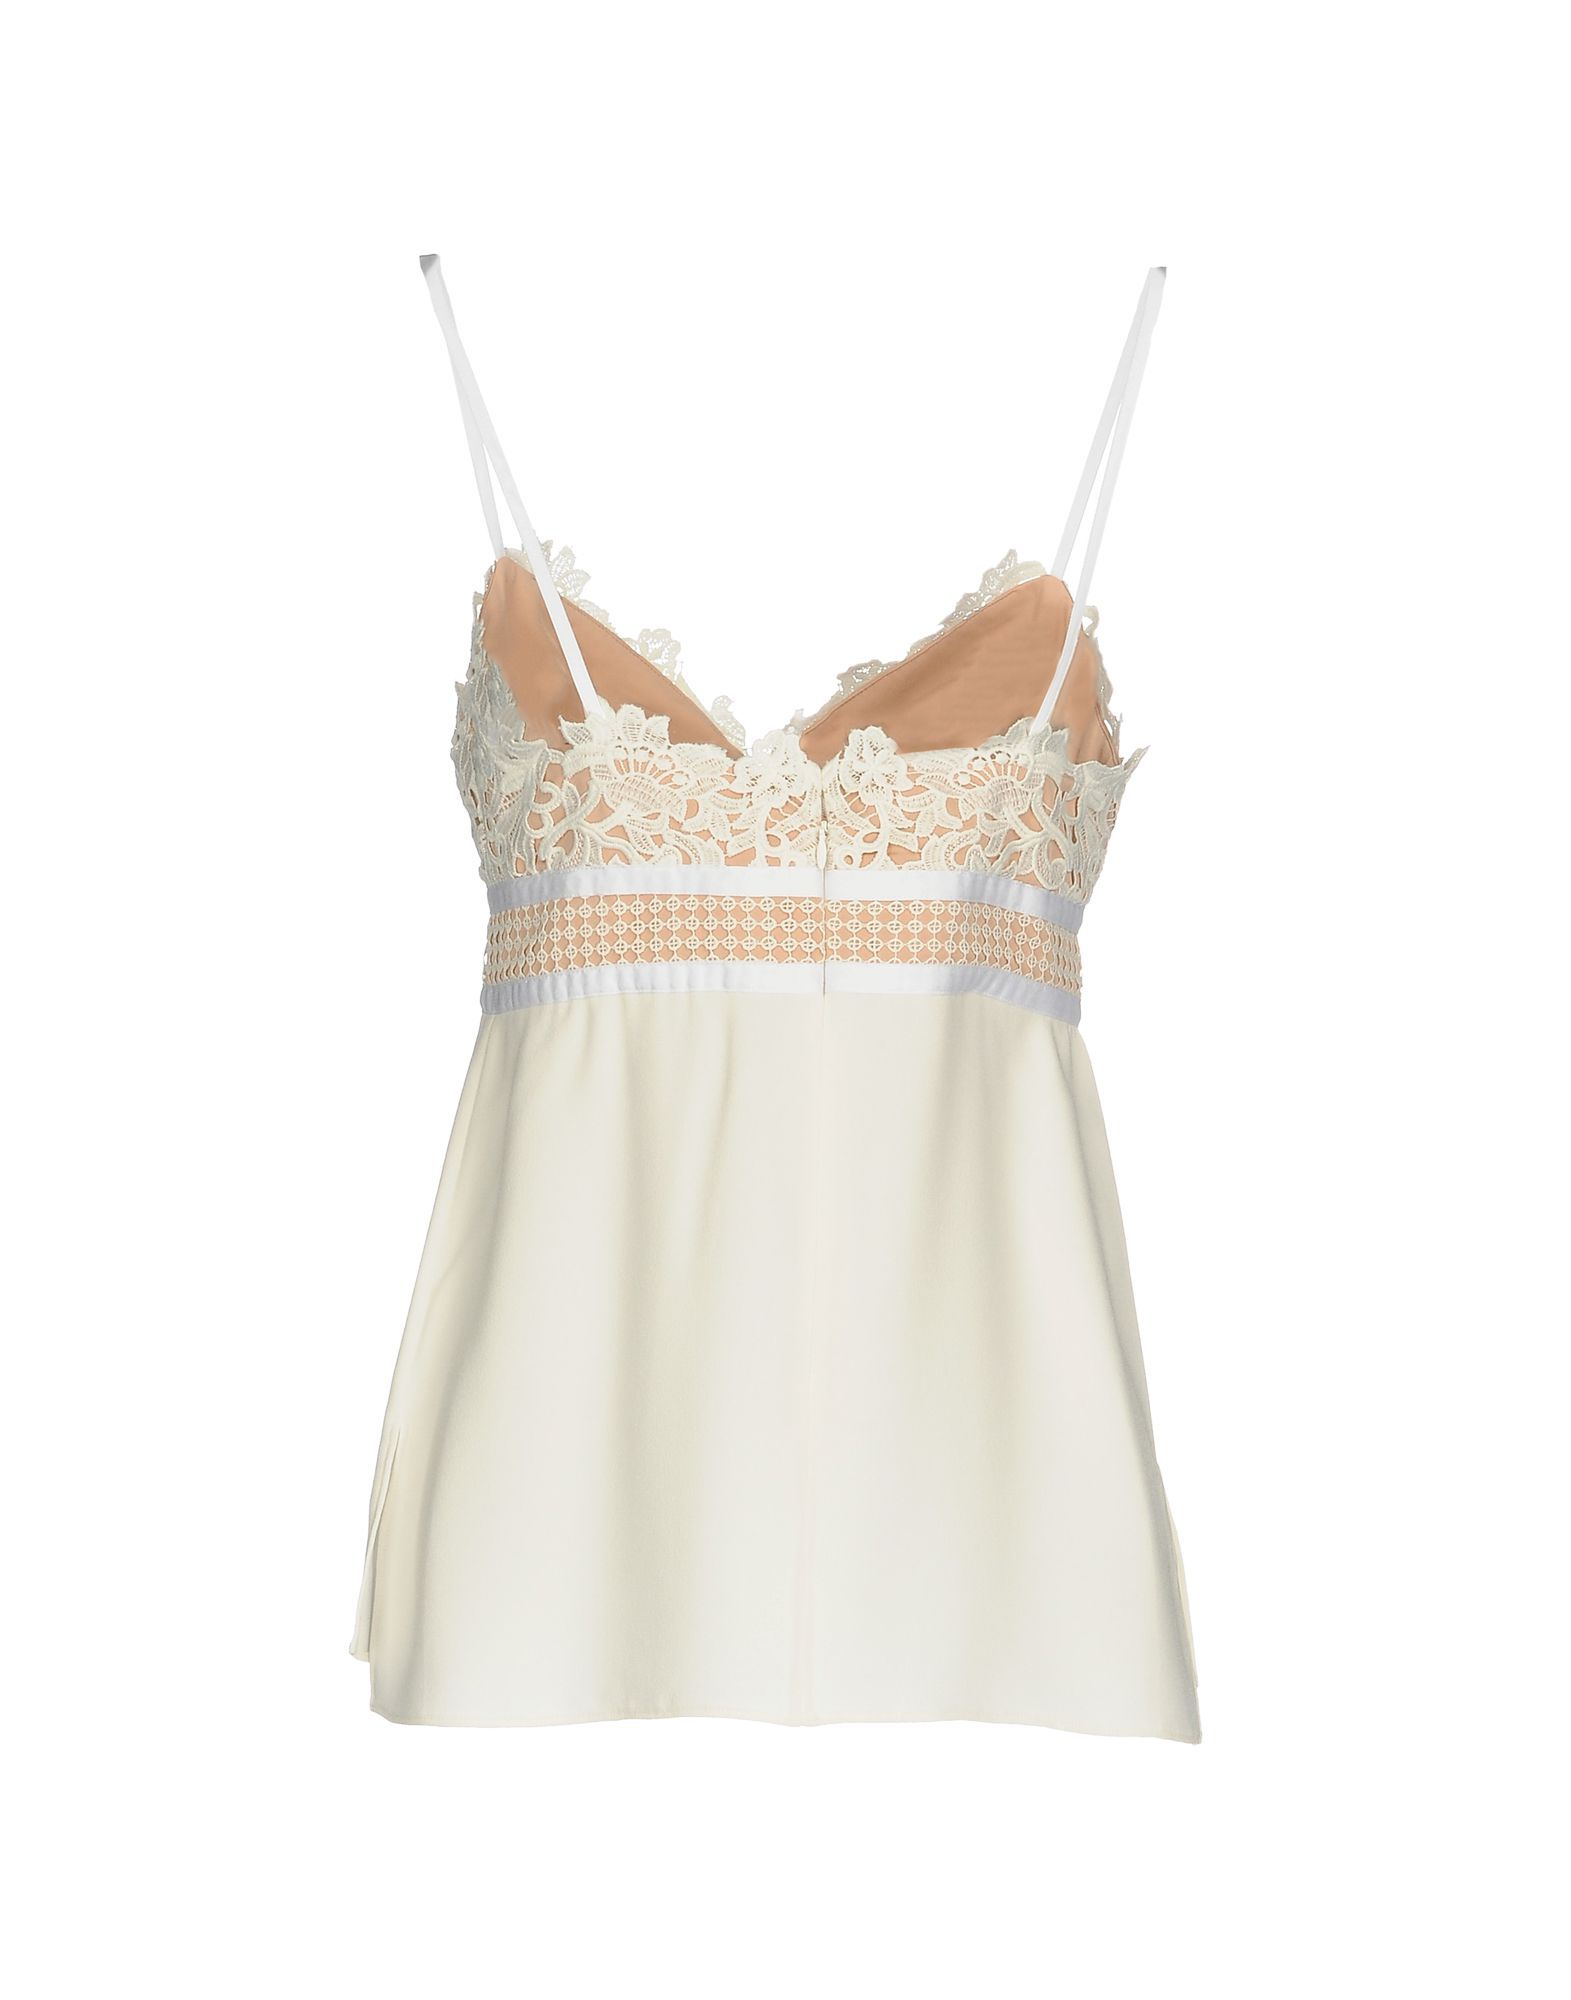 Theory Ivory Lace Camisole